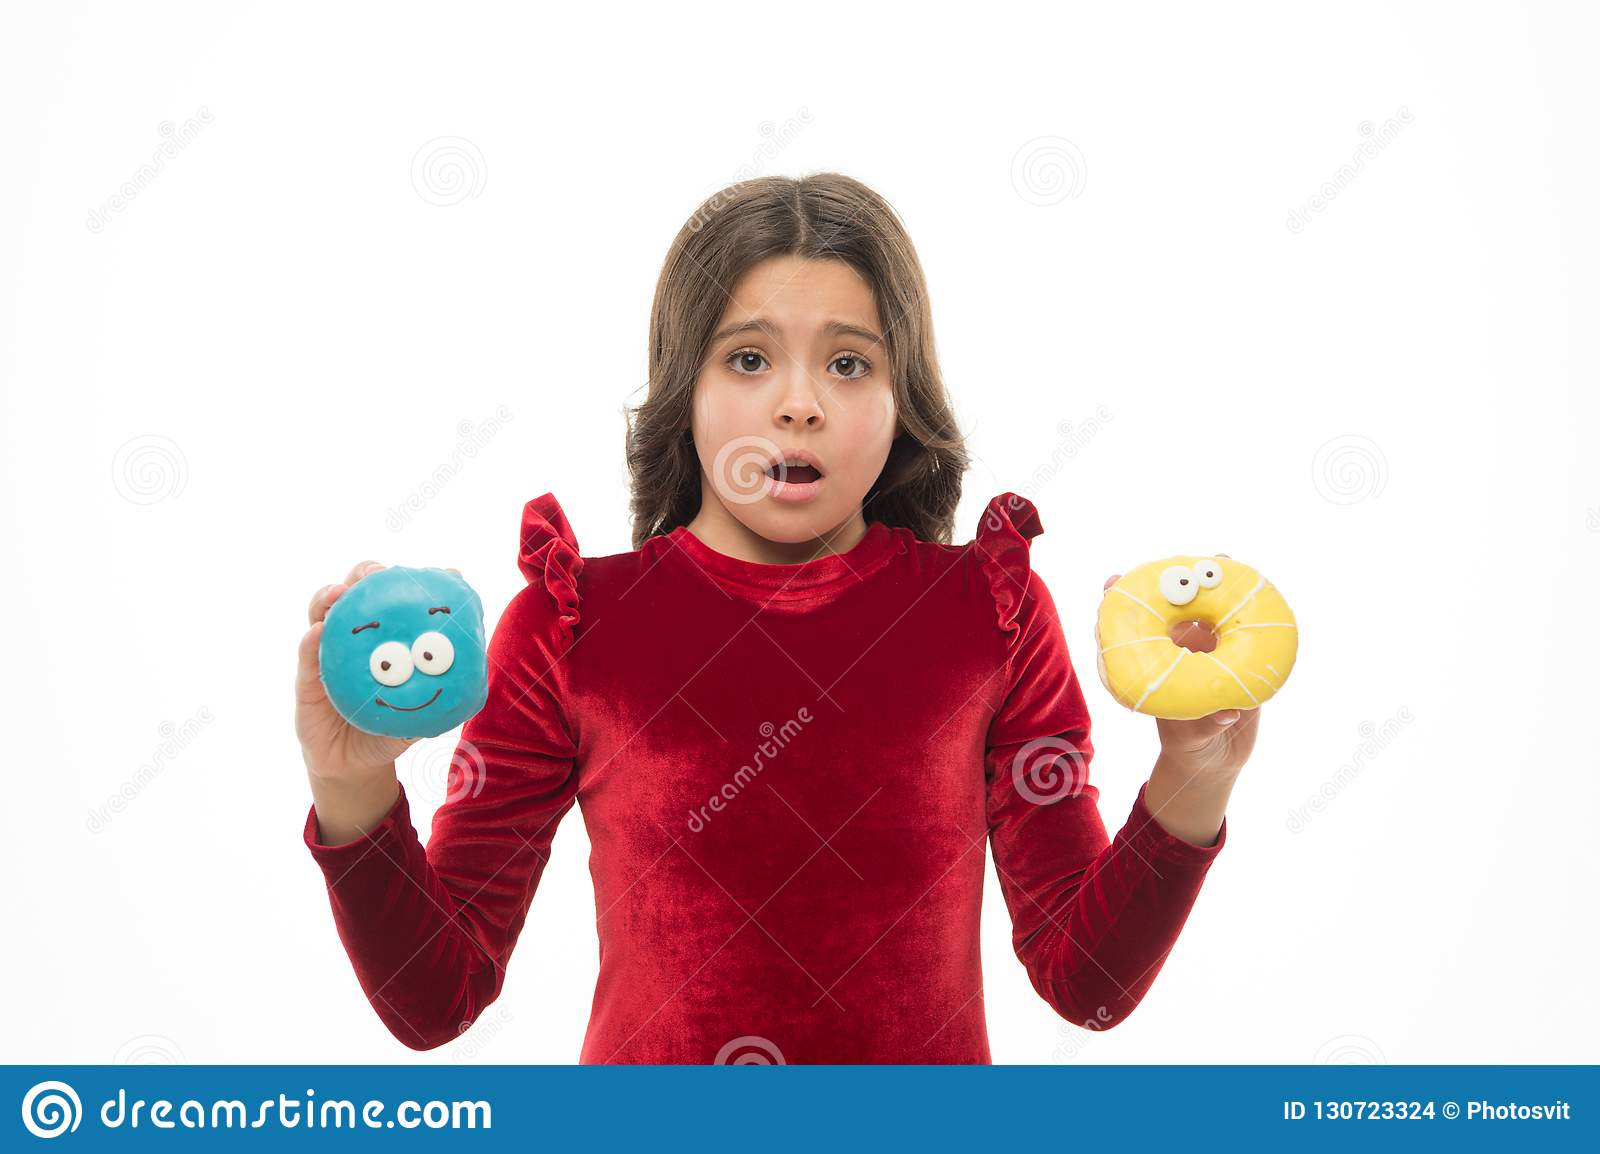 Dont know which to eat first. Small kid in doughnut bakery. Little child with funny donuts. Adorable small girl in